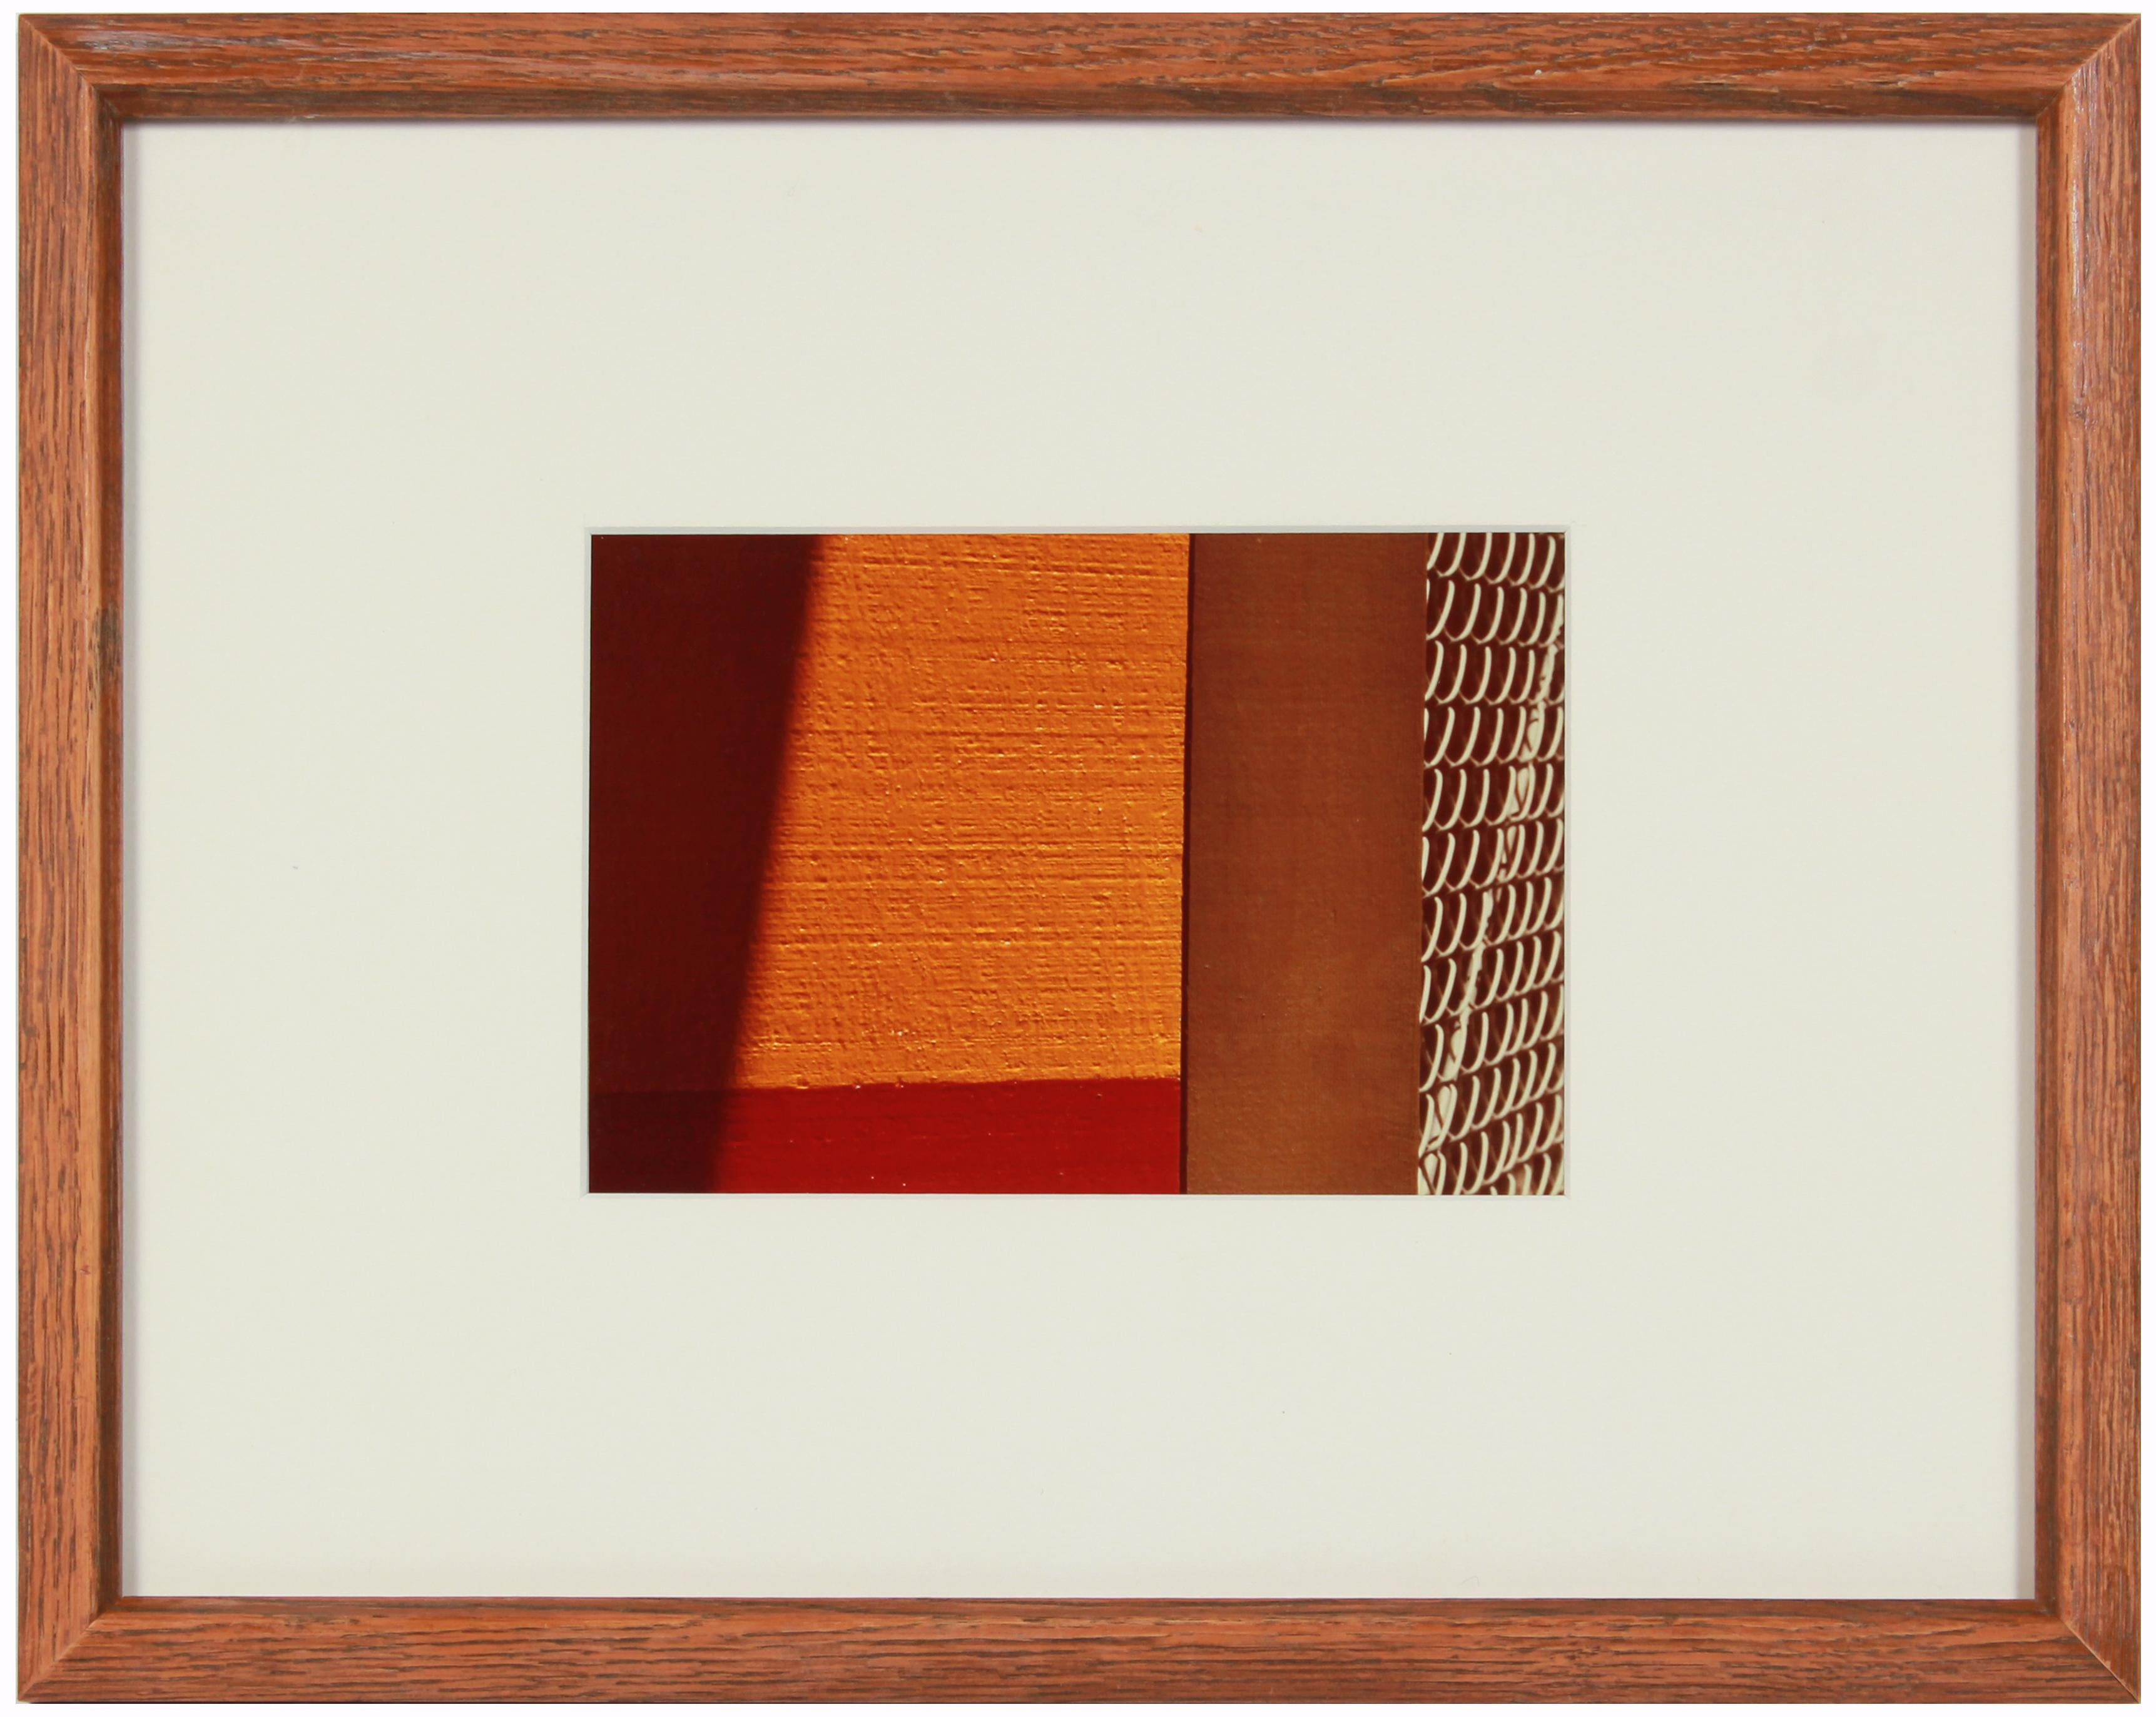 """""""City Art #10"""" 1970's Abstract San Francisco Color Photograph with Red & Orange"""